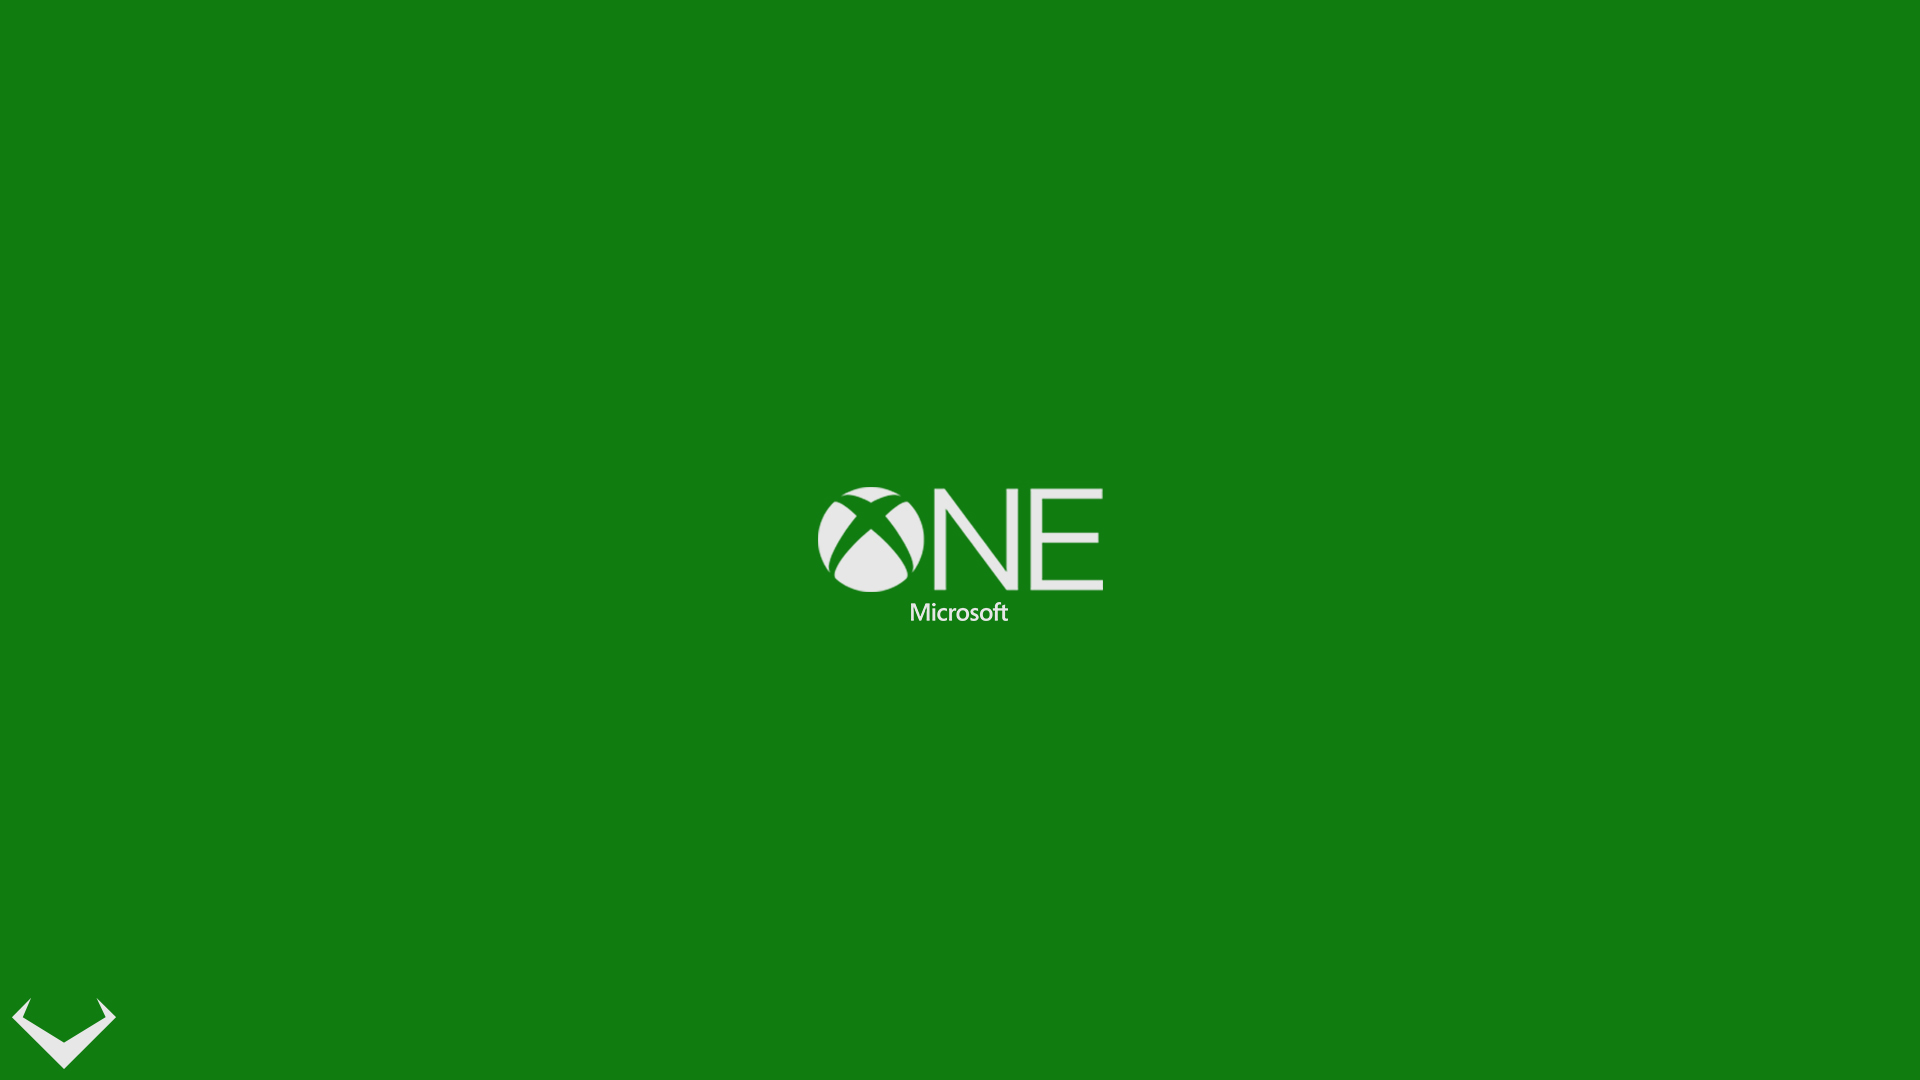 Xbox one wallpaper resolution wallpapersafari - Xbox one wallpaper 1920x1080 ...